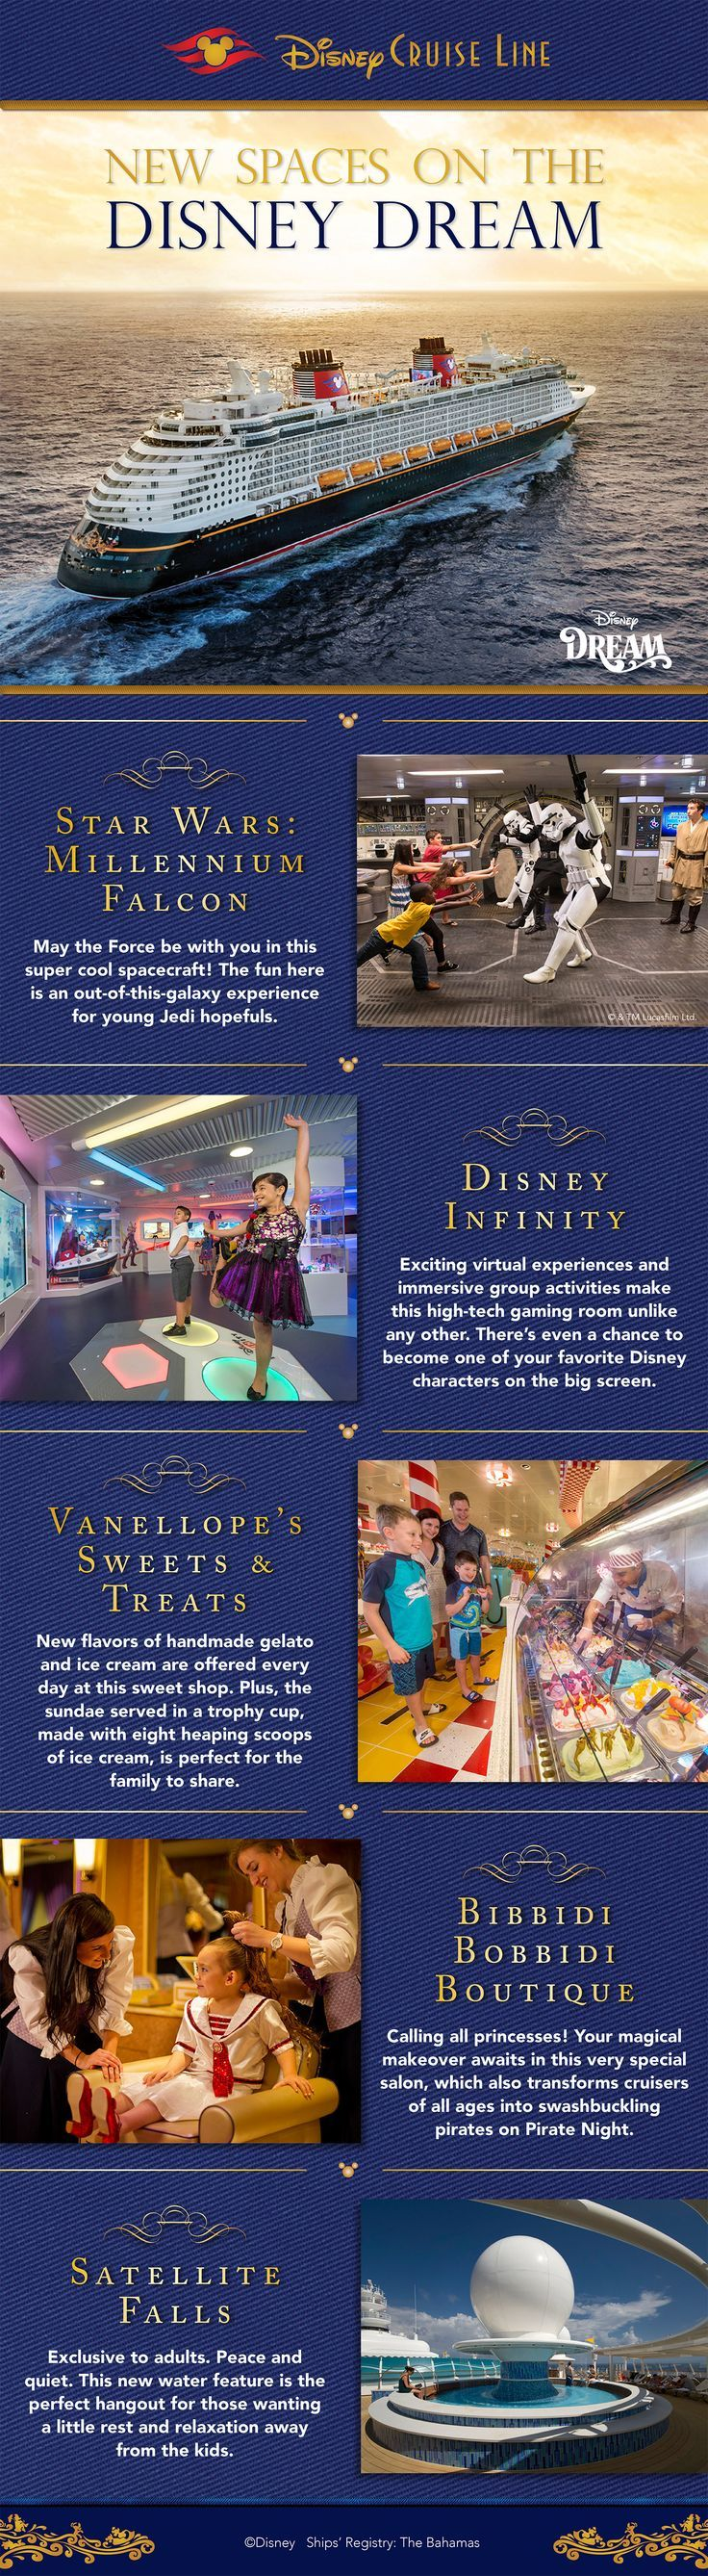 Disney Cruise Line has recently debuted brand-new spaces on the Disney Dream, including the first-ever play area on a Disney ship themed to Star Wars! http://www.dpbolvw.net/click-8074754-10566388-1457977858000